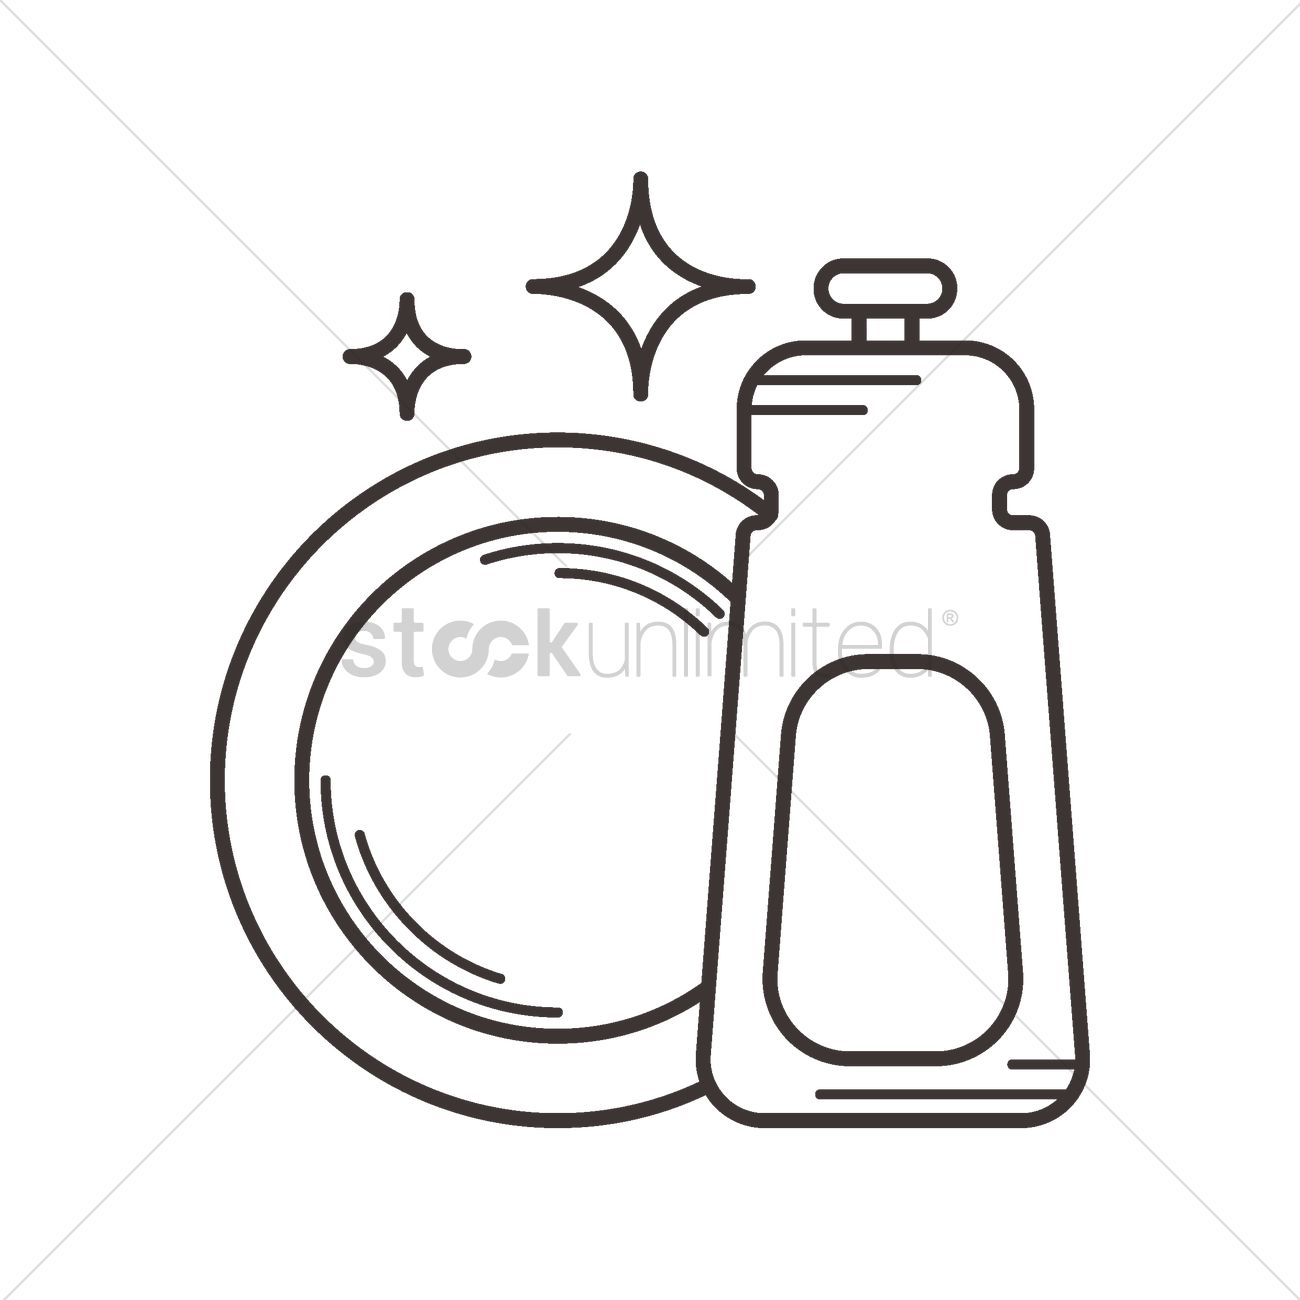 dishwasher clipart black and white. dishwasher detergent and plate vector graphic clipart black white